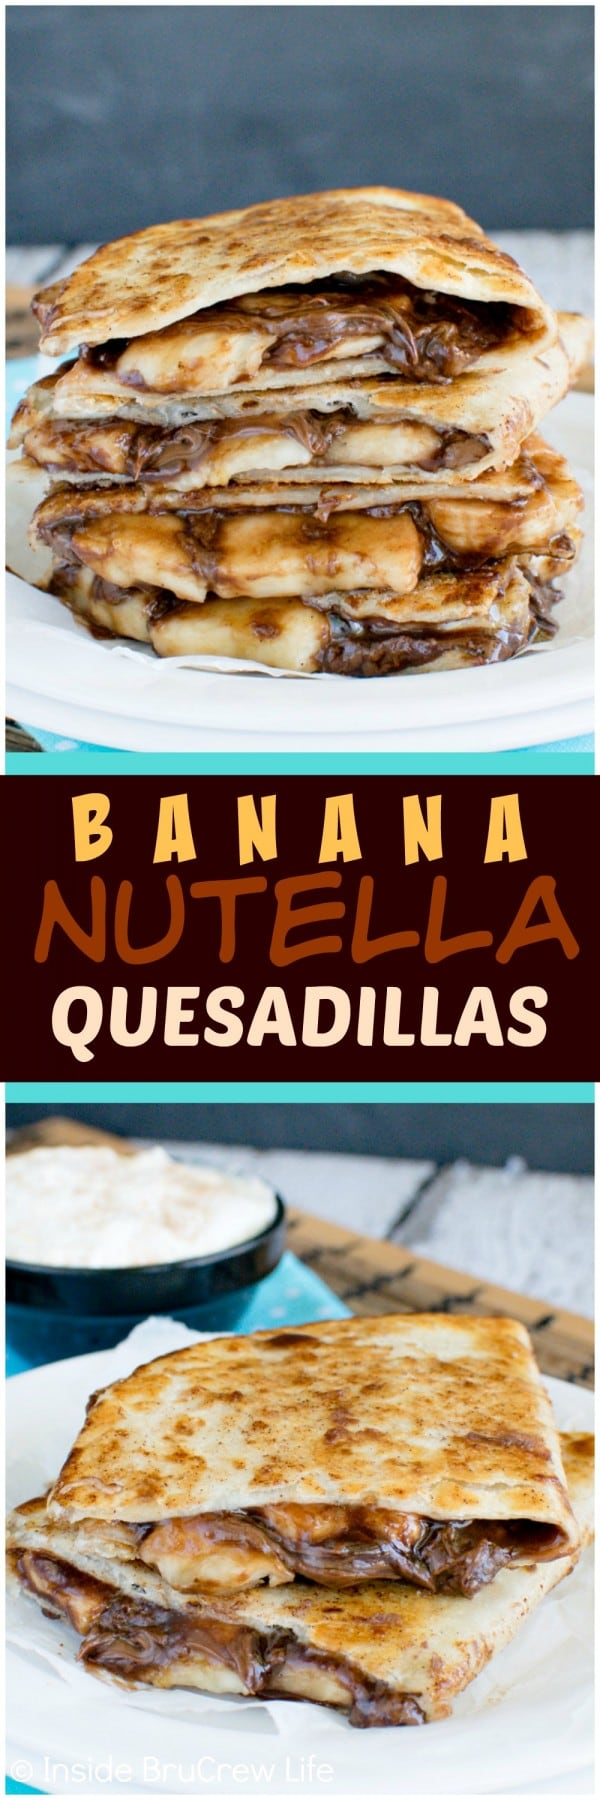 Banana Nutella Quesadillas - cinnamon sugar tortillas filled with banana slices and Nutella is a delicious treat. Make this easy no bake dessert recipe when you are craving chocolate. #dessertquesadillas #nutella #banana #chocolate #nobakedessert